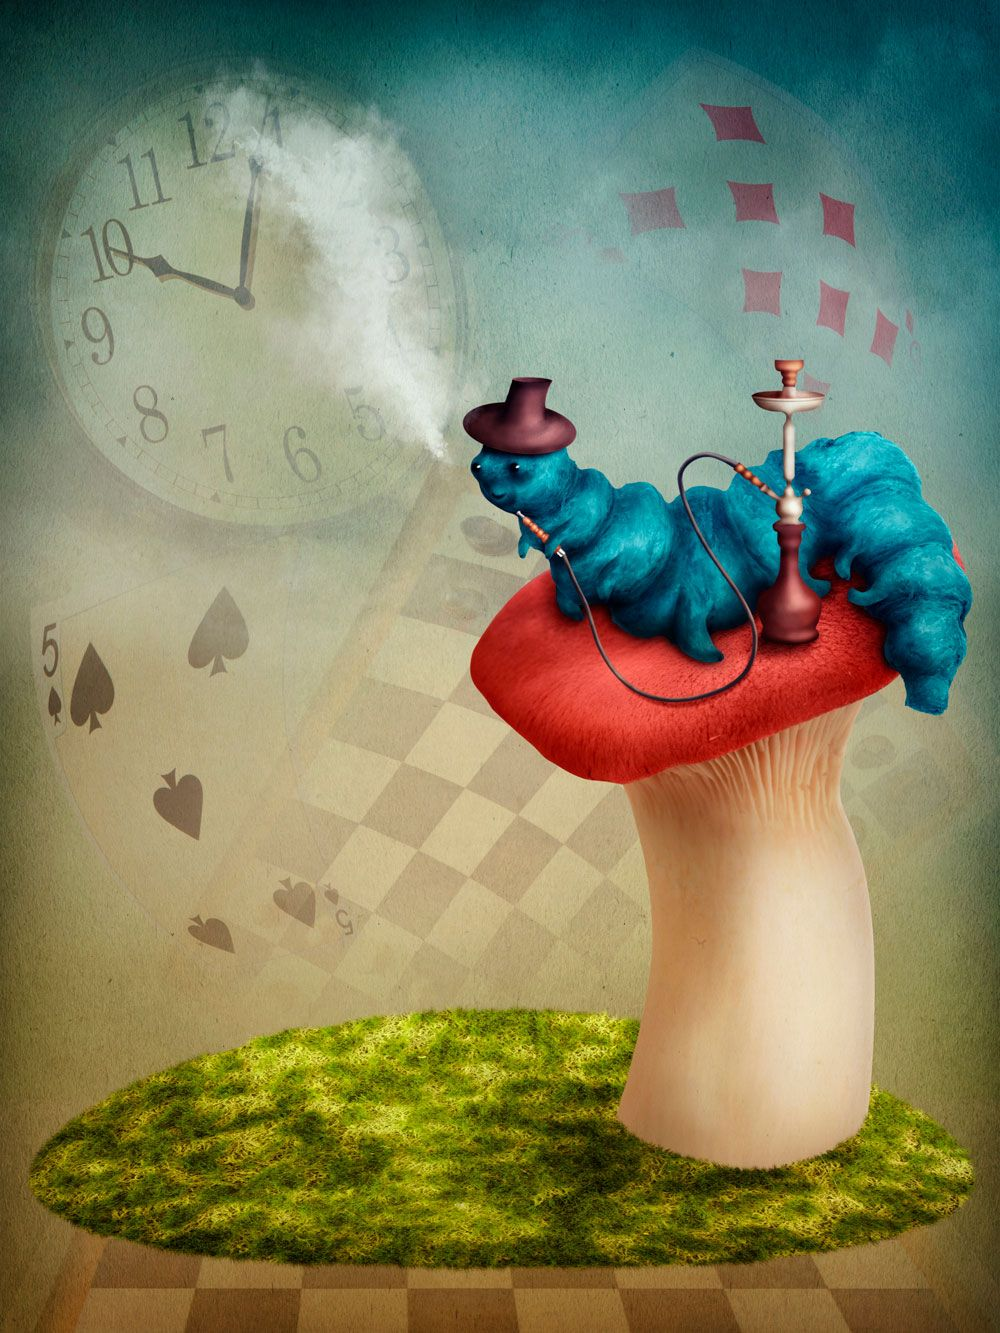 Liven Up Your Wall With This U0027Alice In Wonderland Hookah Smoking  Caterpillaru0027 Feature Wallpaper